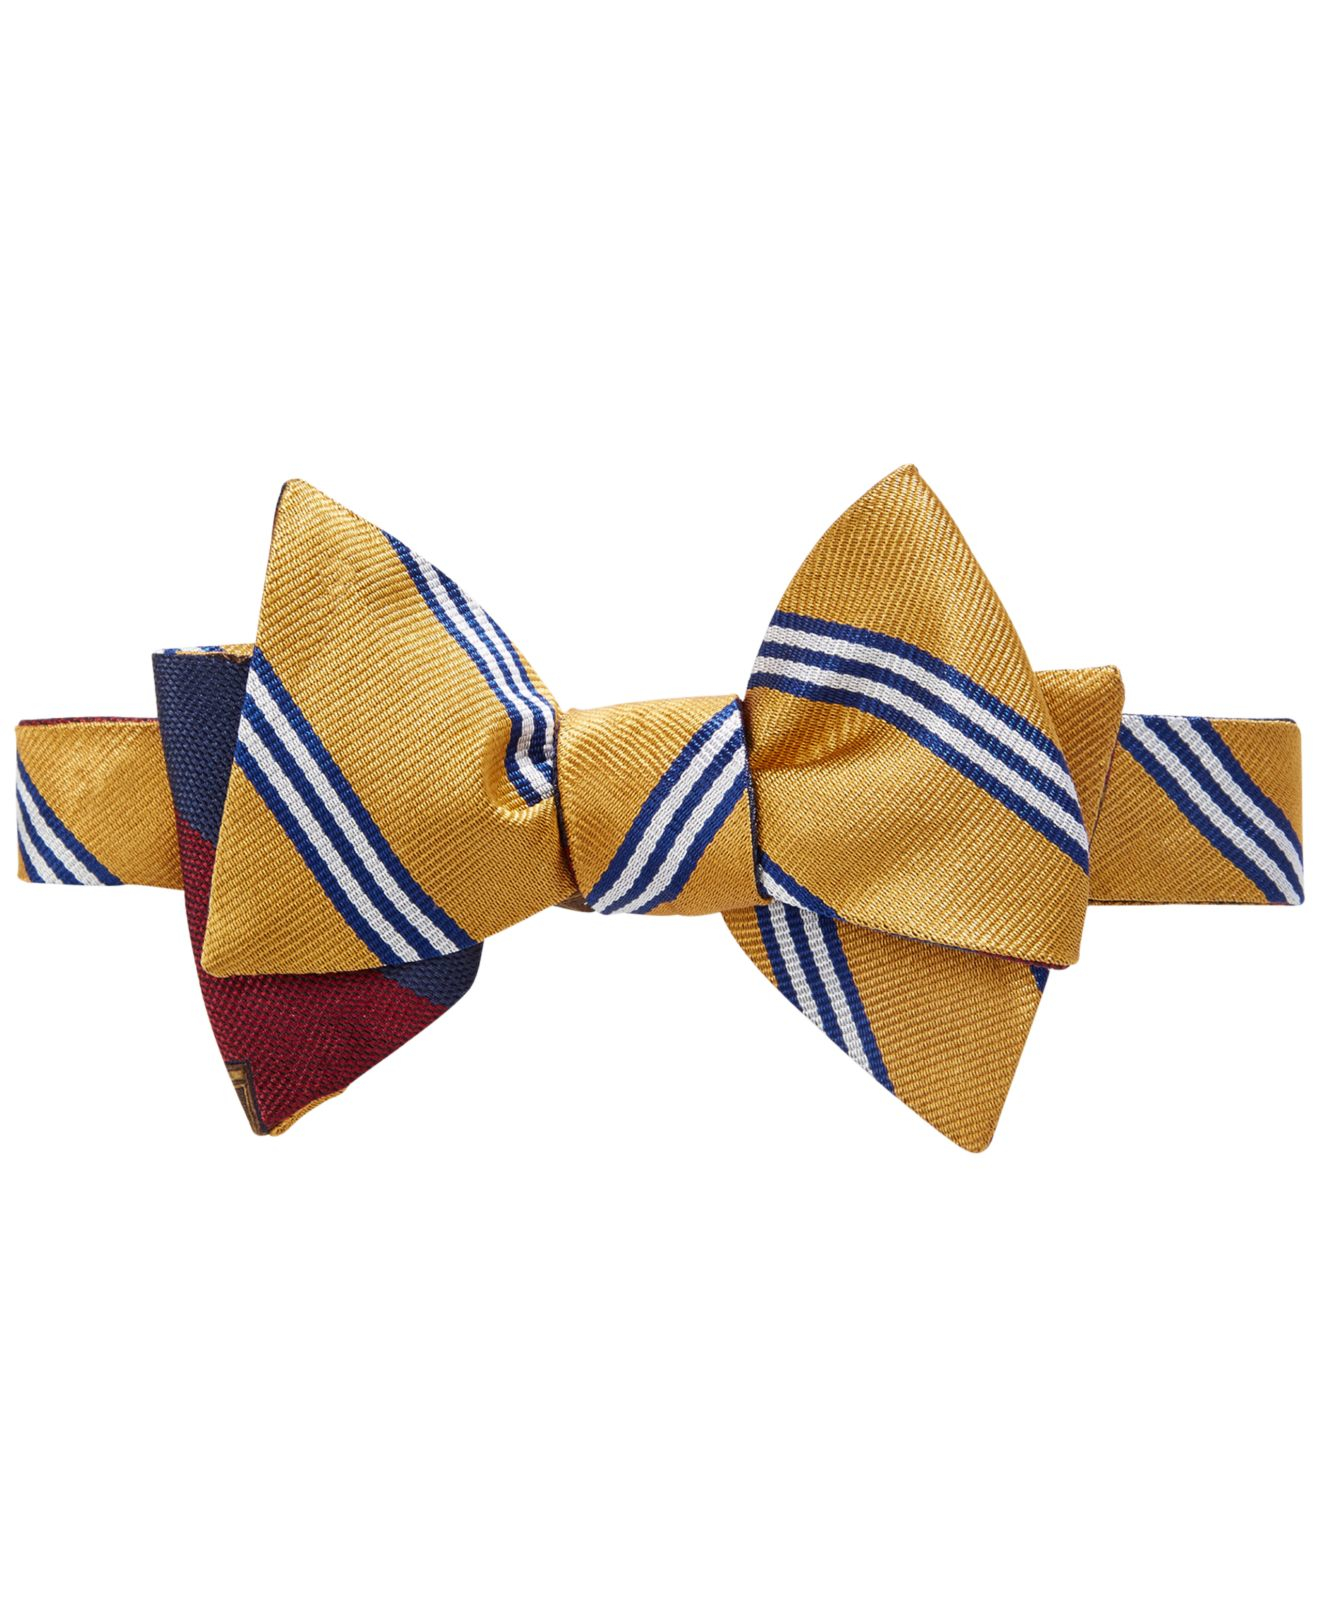 Brooks brothers Reversible Gold Stripe And Crest To-tie ...